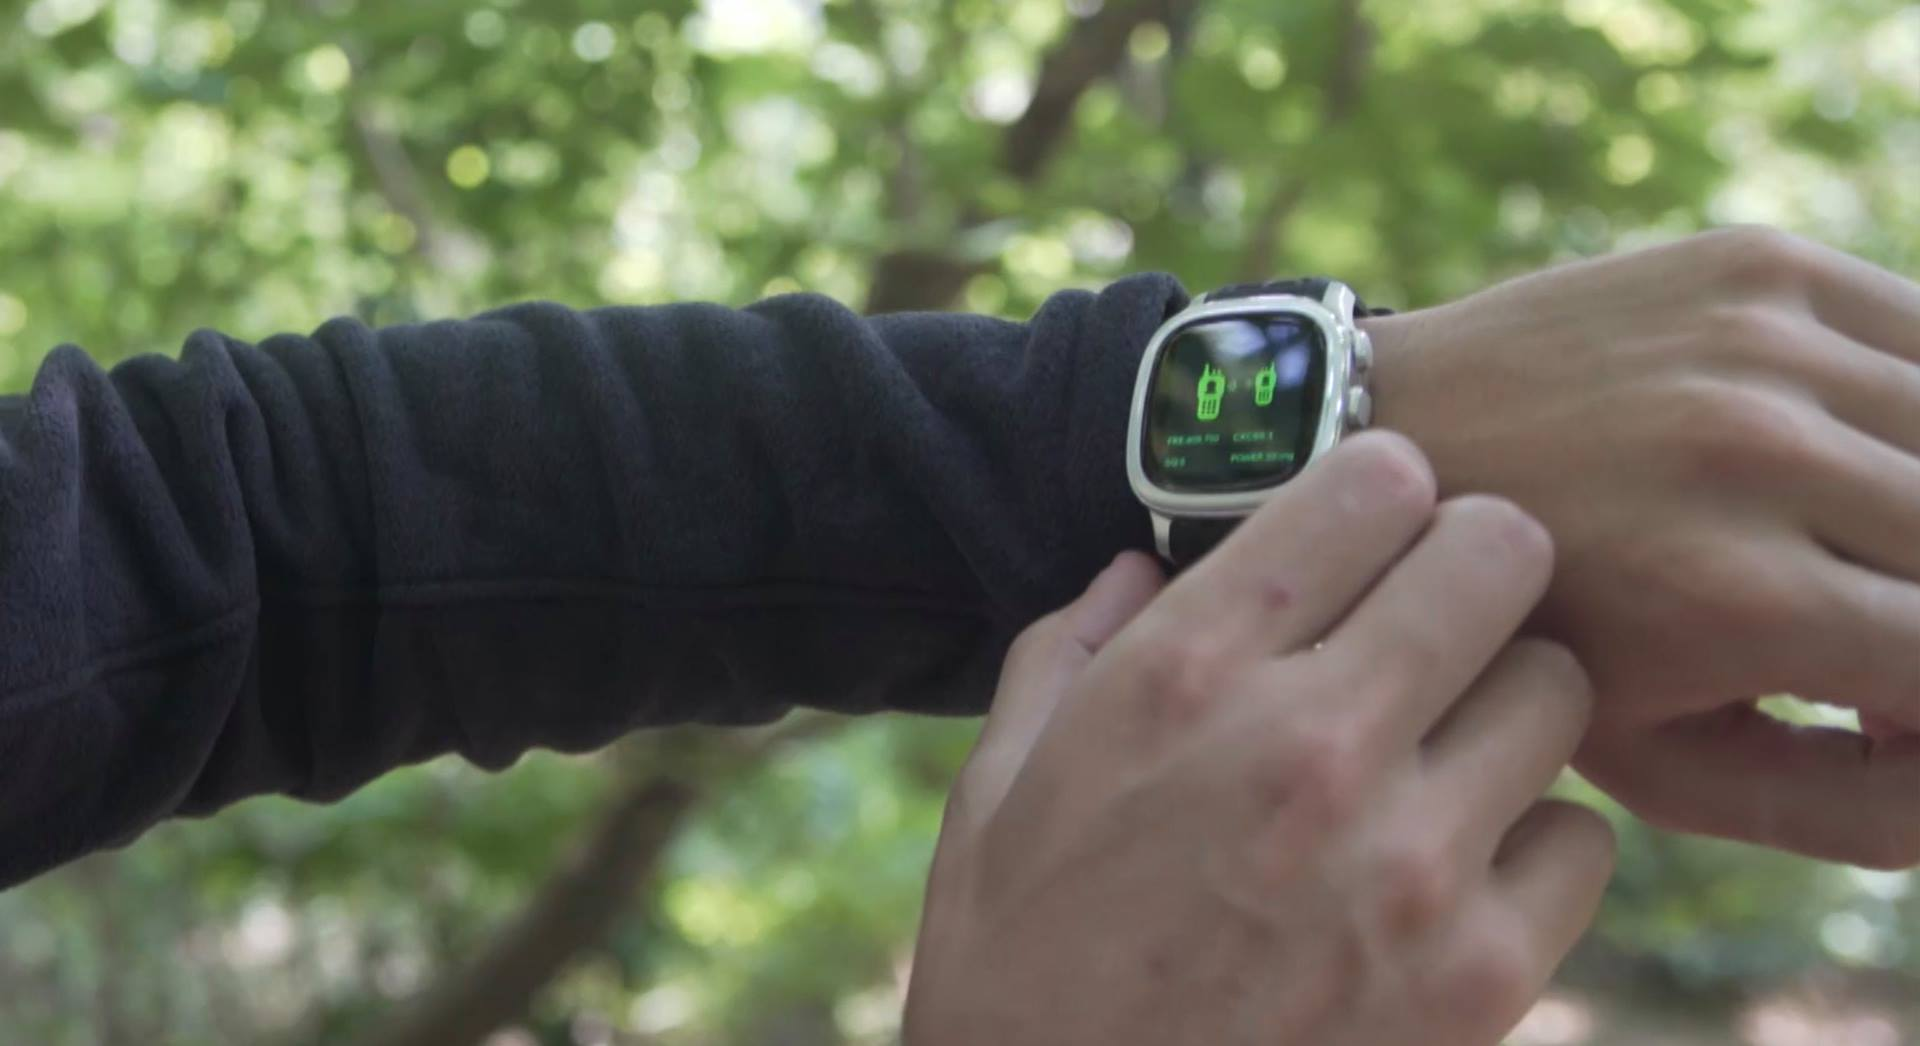 Finally, A Smartwatch That's Also A Walkie Talkie